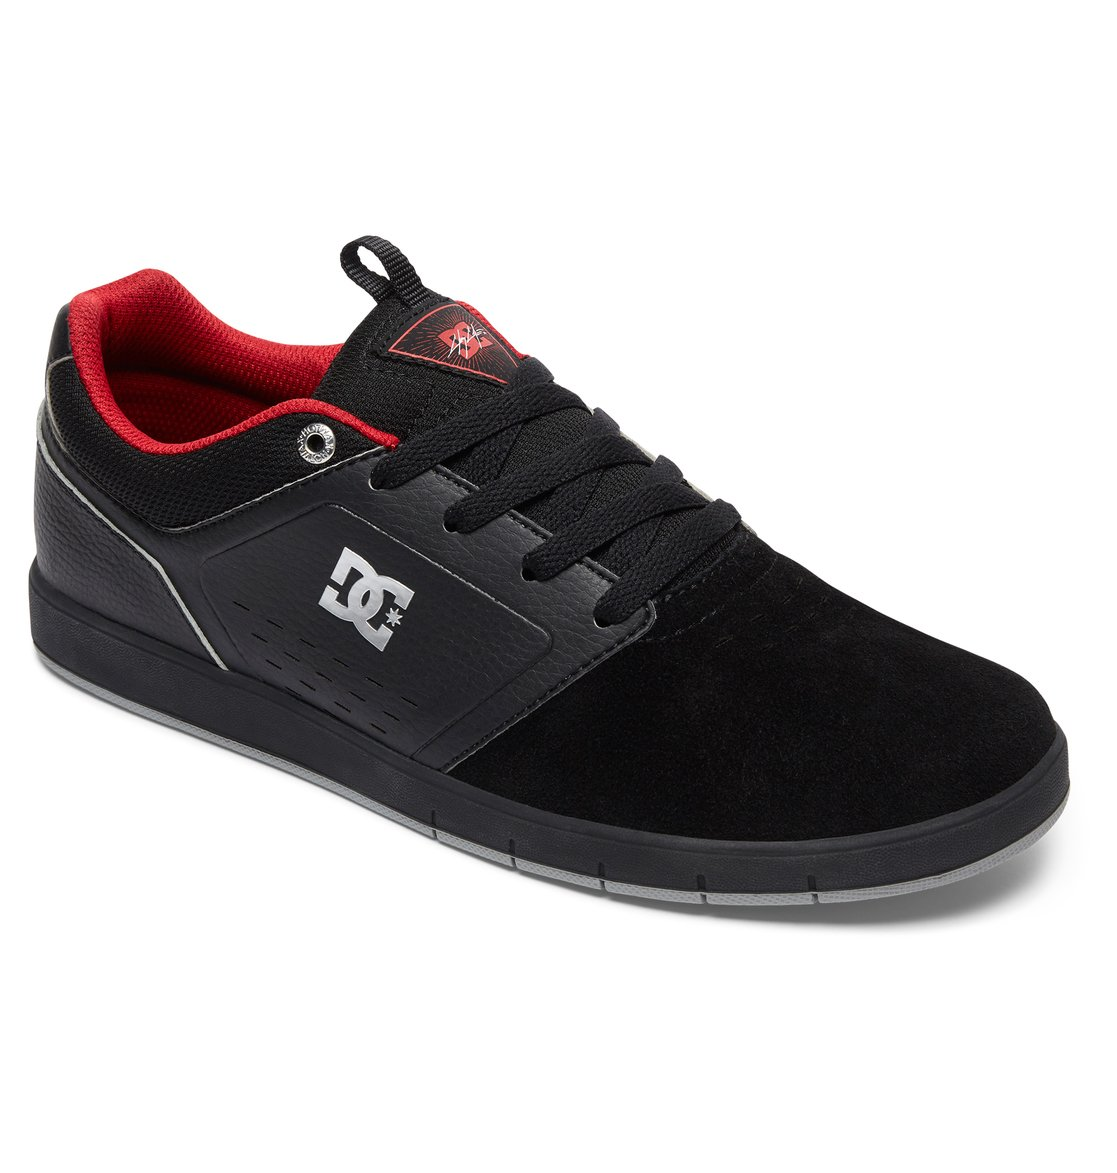 6 items · Find 90 listings related to Stores That Carry Dc Shoes in Odessa on terpiderca.ga See reviews, photos, directions, phone numbers and more for Stores That Carry Dc Shoes locations in Odessa, TX. Start your search by typing in the business name below.